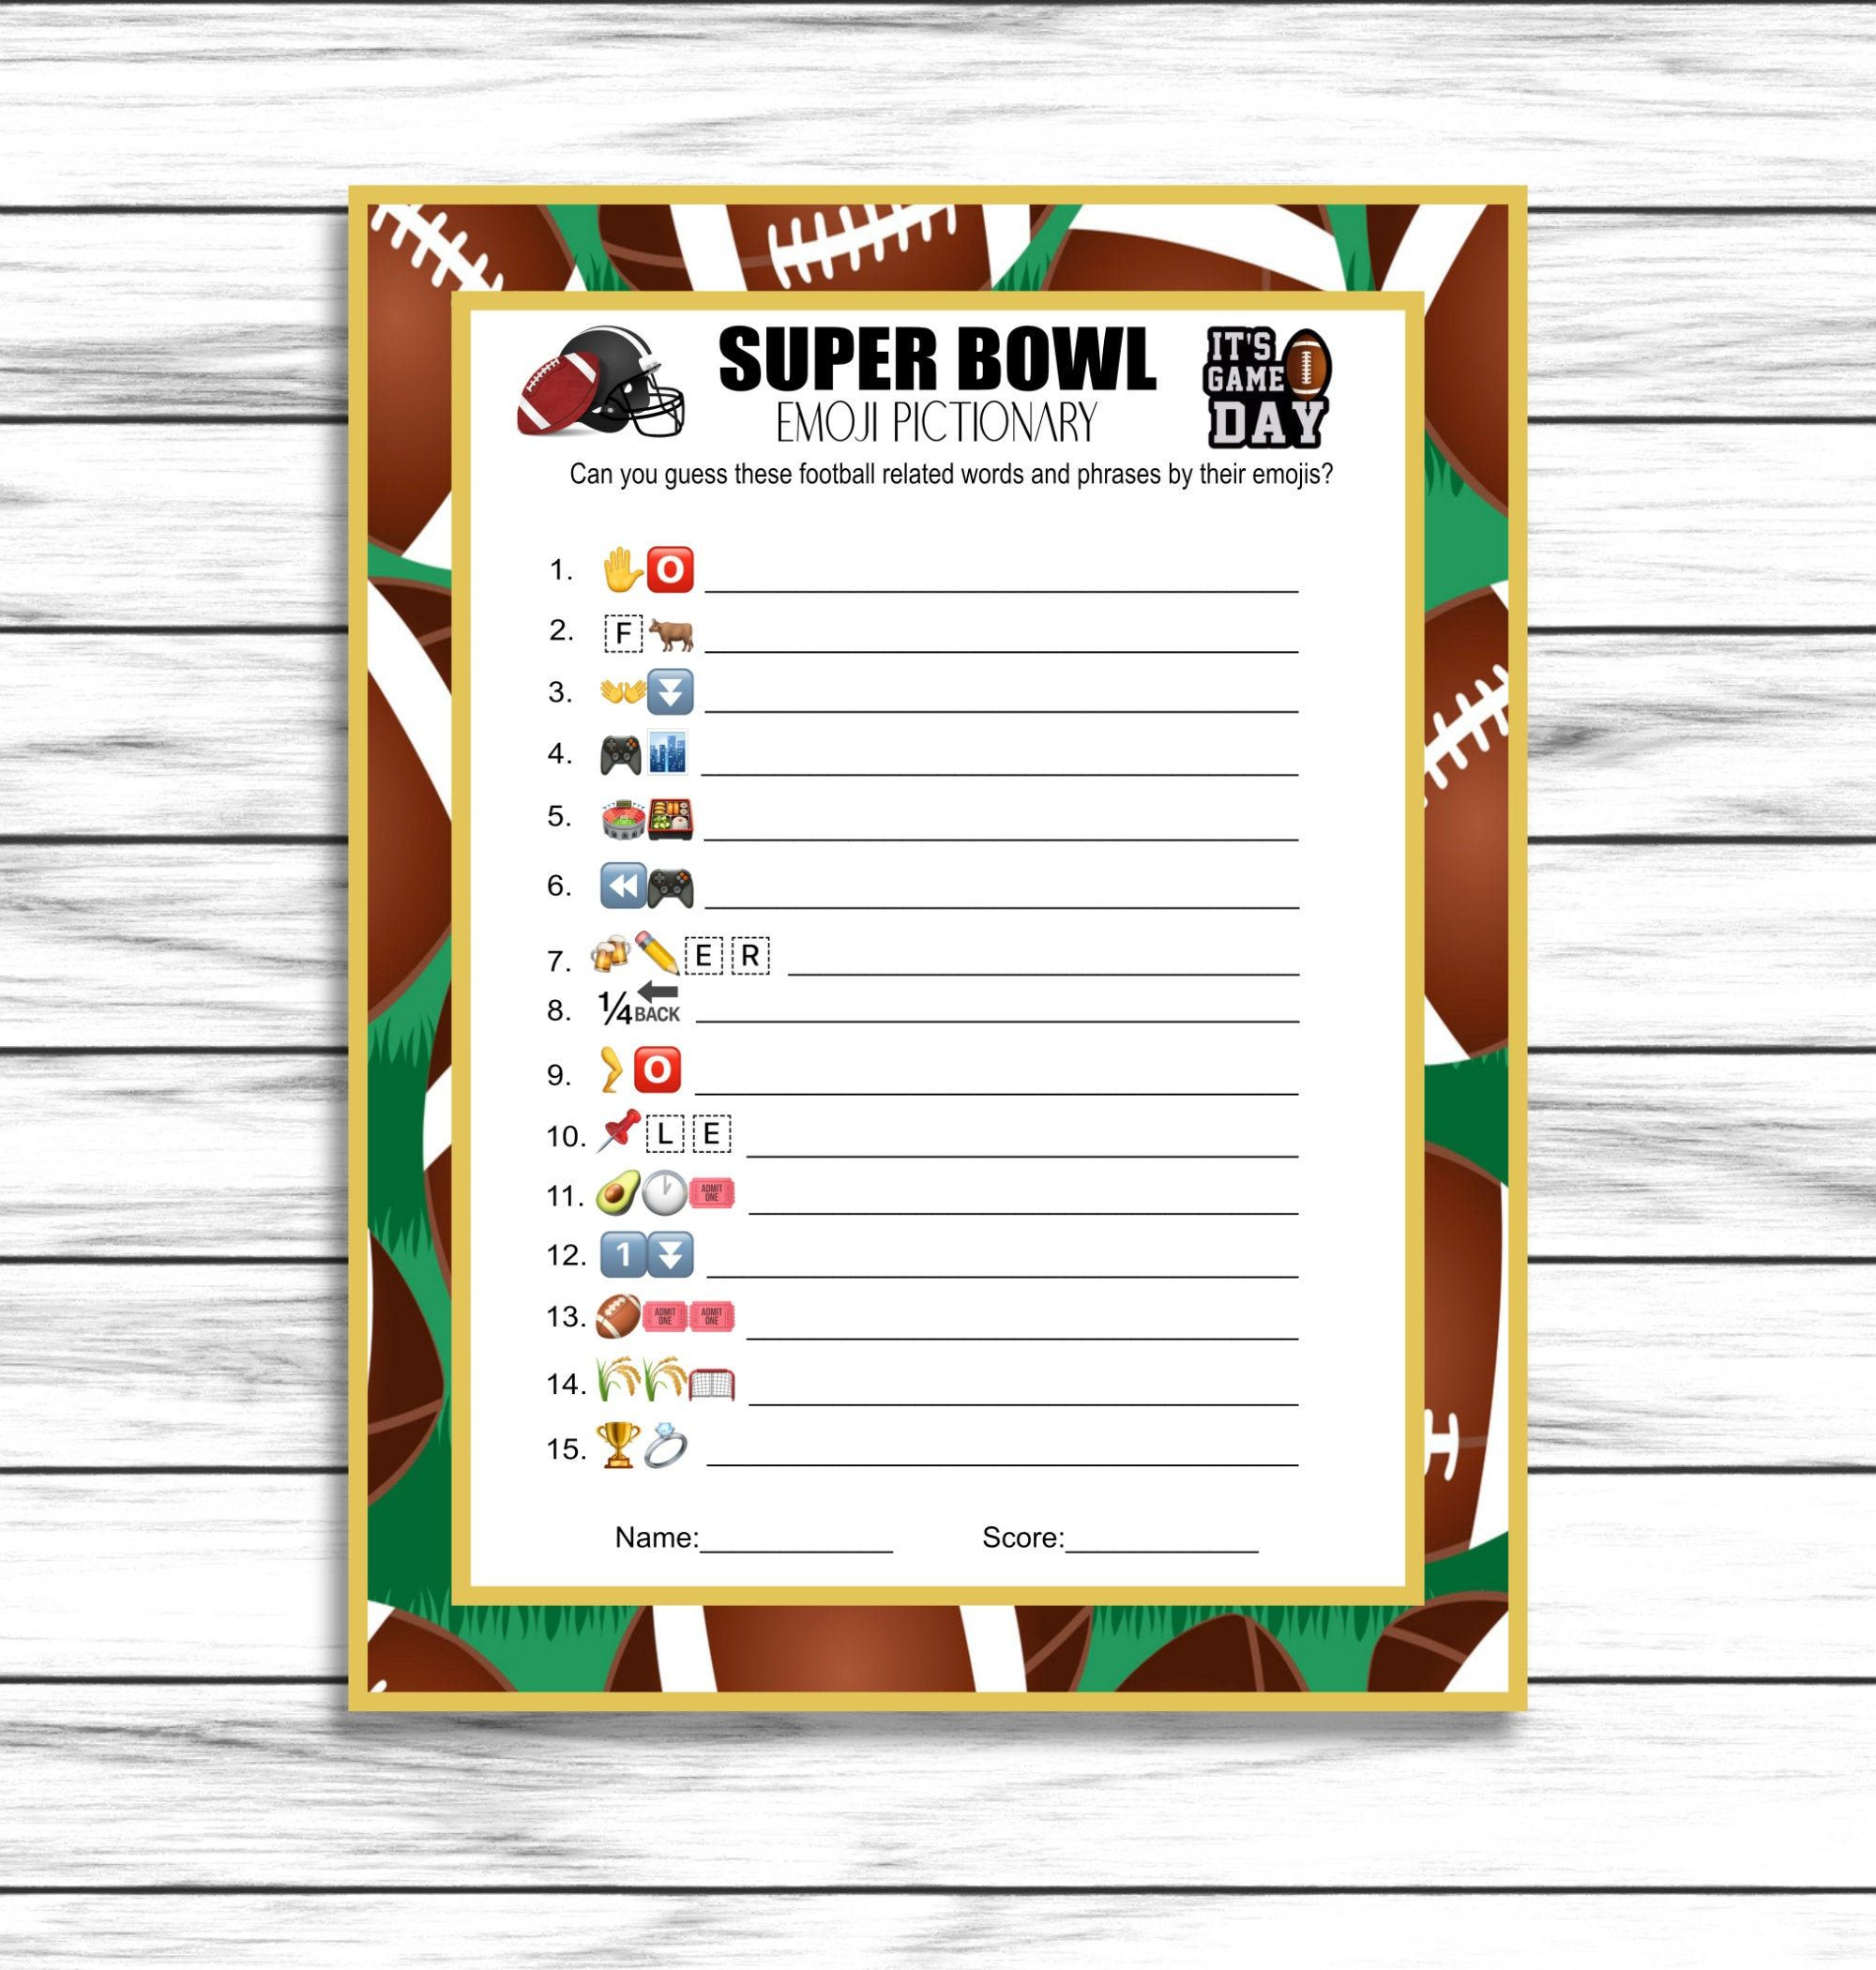 Super Bowl Game Super Bowl Emoji Pictionary Football Party Etsy In 2020 Superbowl Game Bowl Game Football Party Games